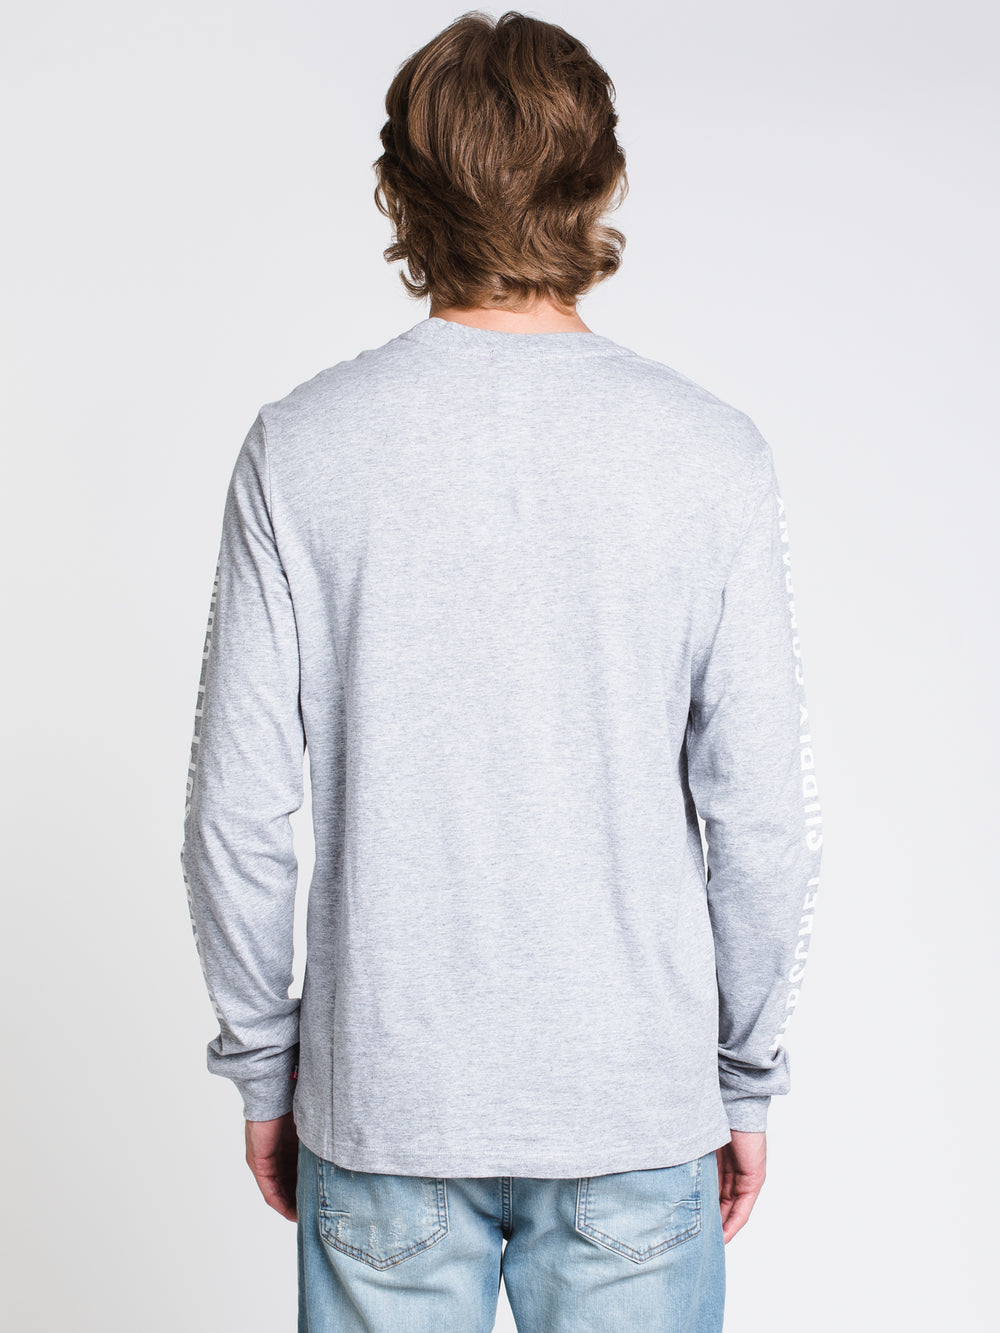 MENS SLEEVE PRINT LONG SLEEVET-SHIRT- GREY